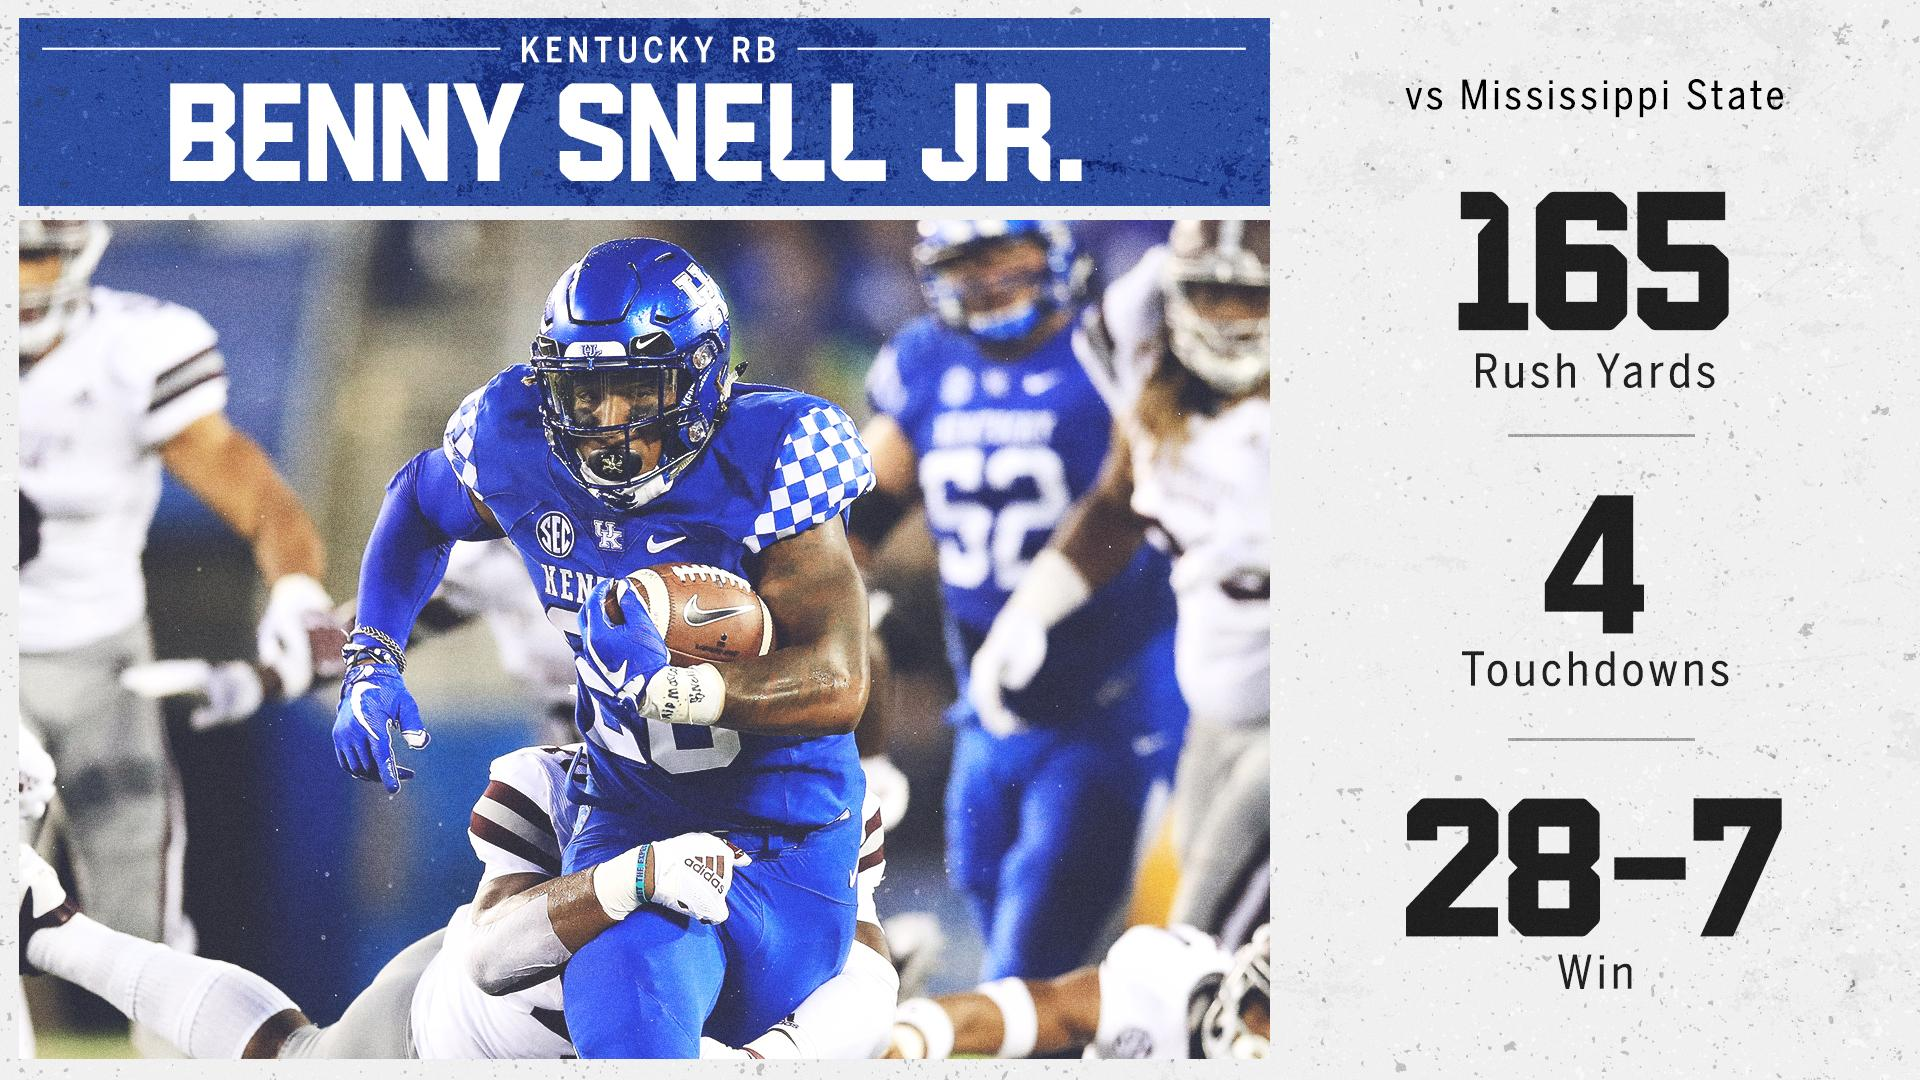 Kentucky is 4-0 for the first time since 2008 ... and Benny Snell Jr. is a big part of that �� https://t.co/g6FMDvwBhj